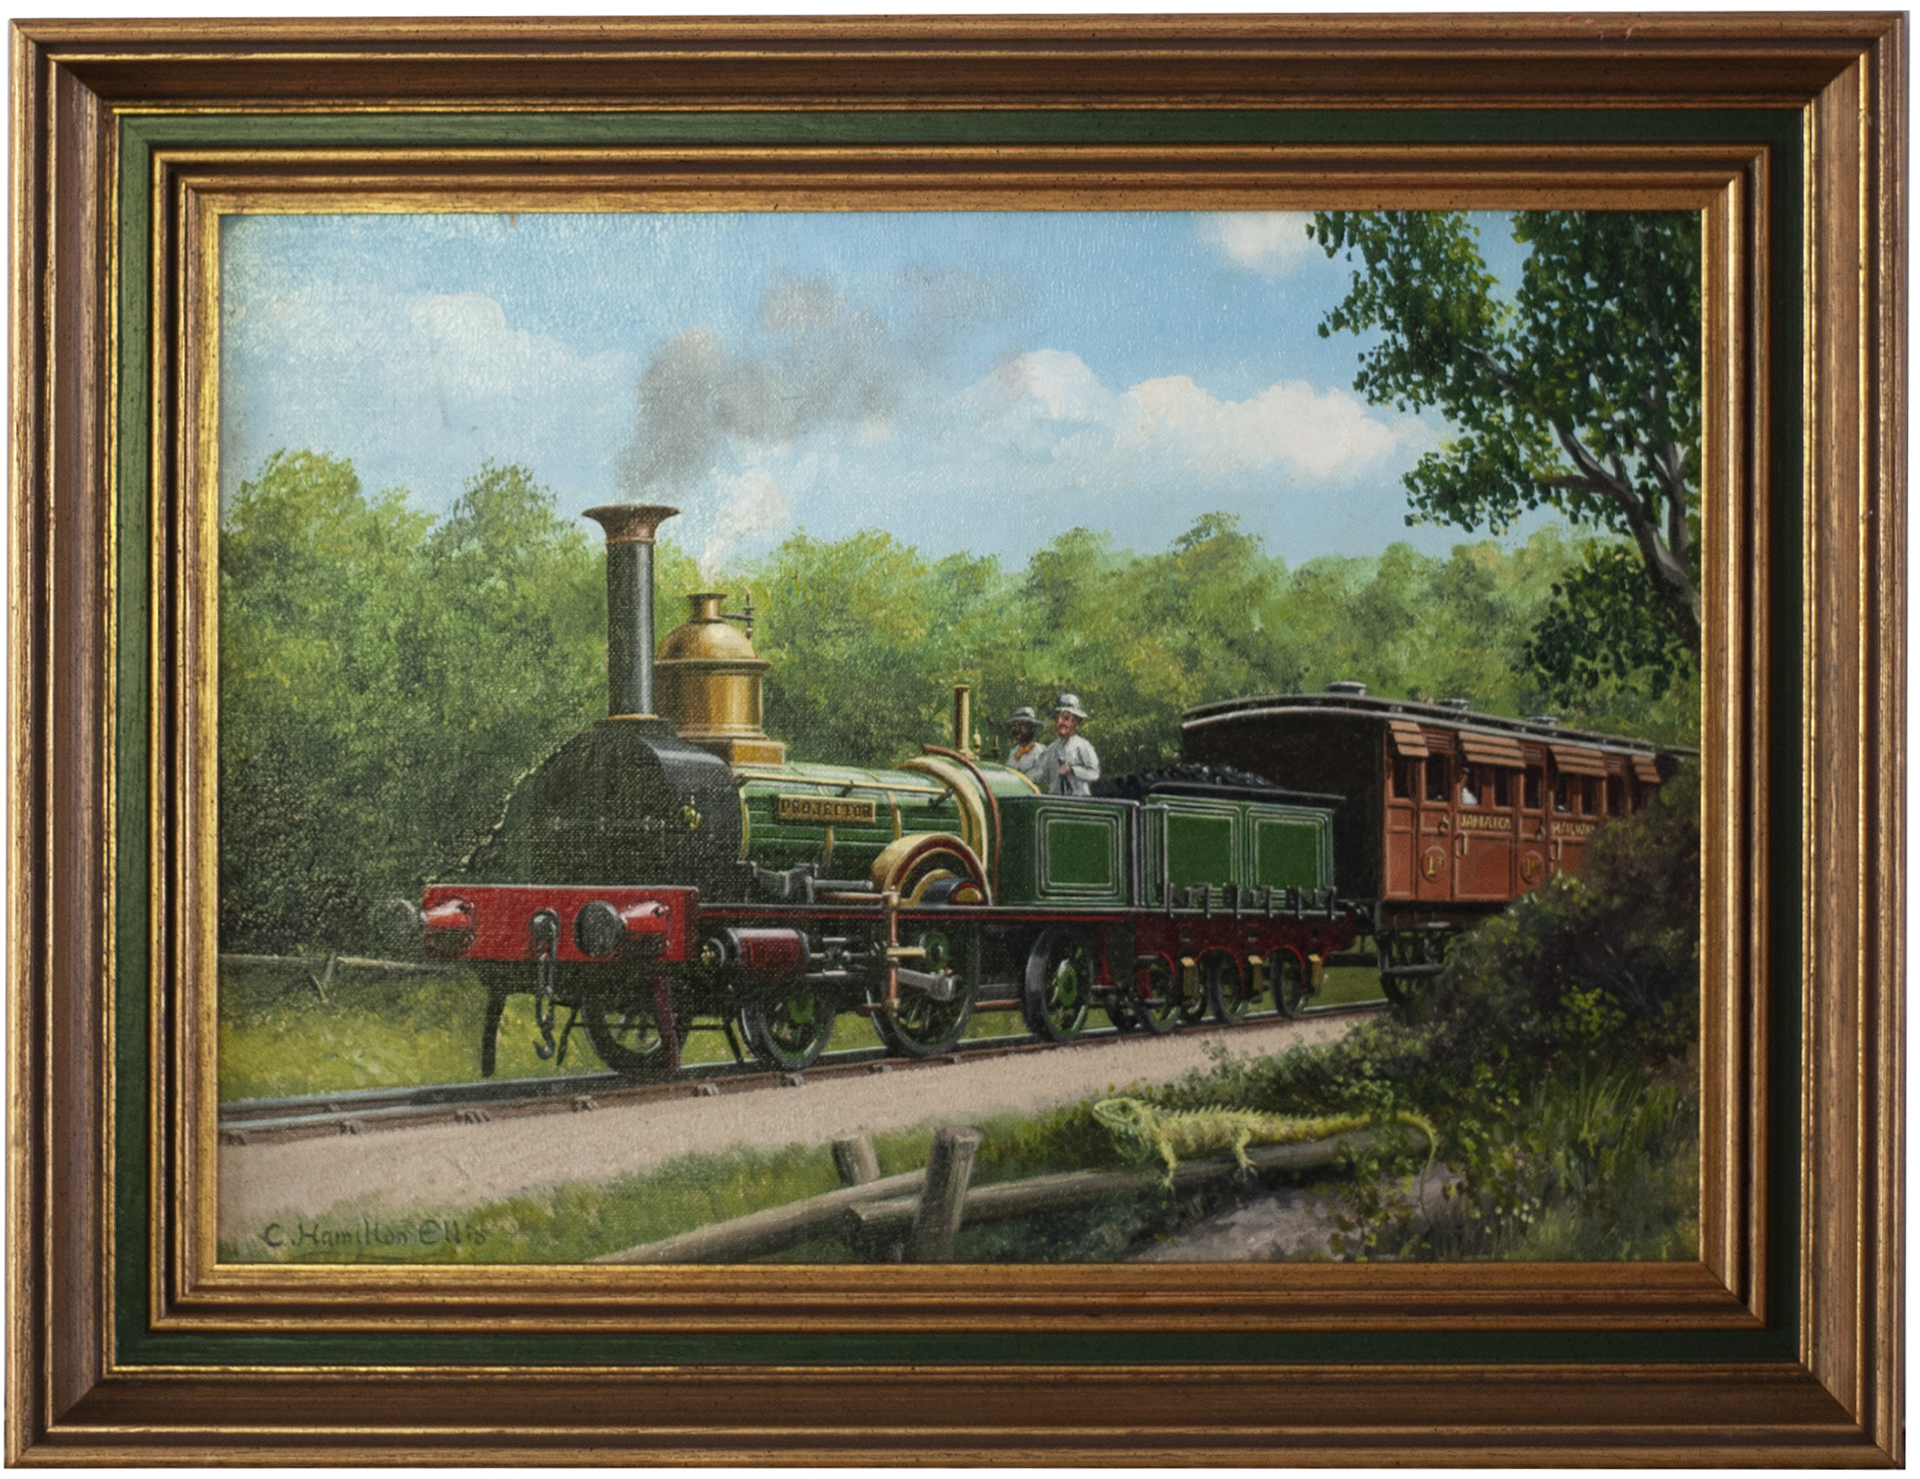 Original painting THE ENGINE AND THE IGUANA by Charles Hamilton Ellis. The painting depicts a